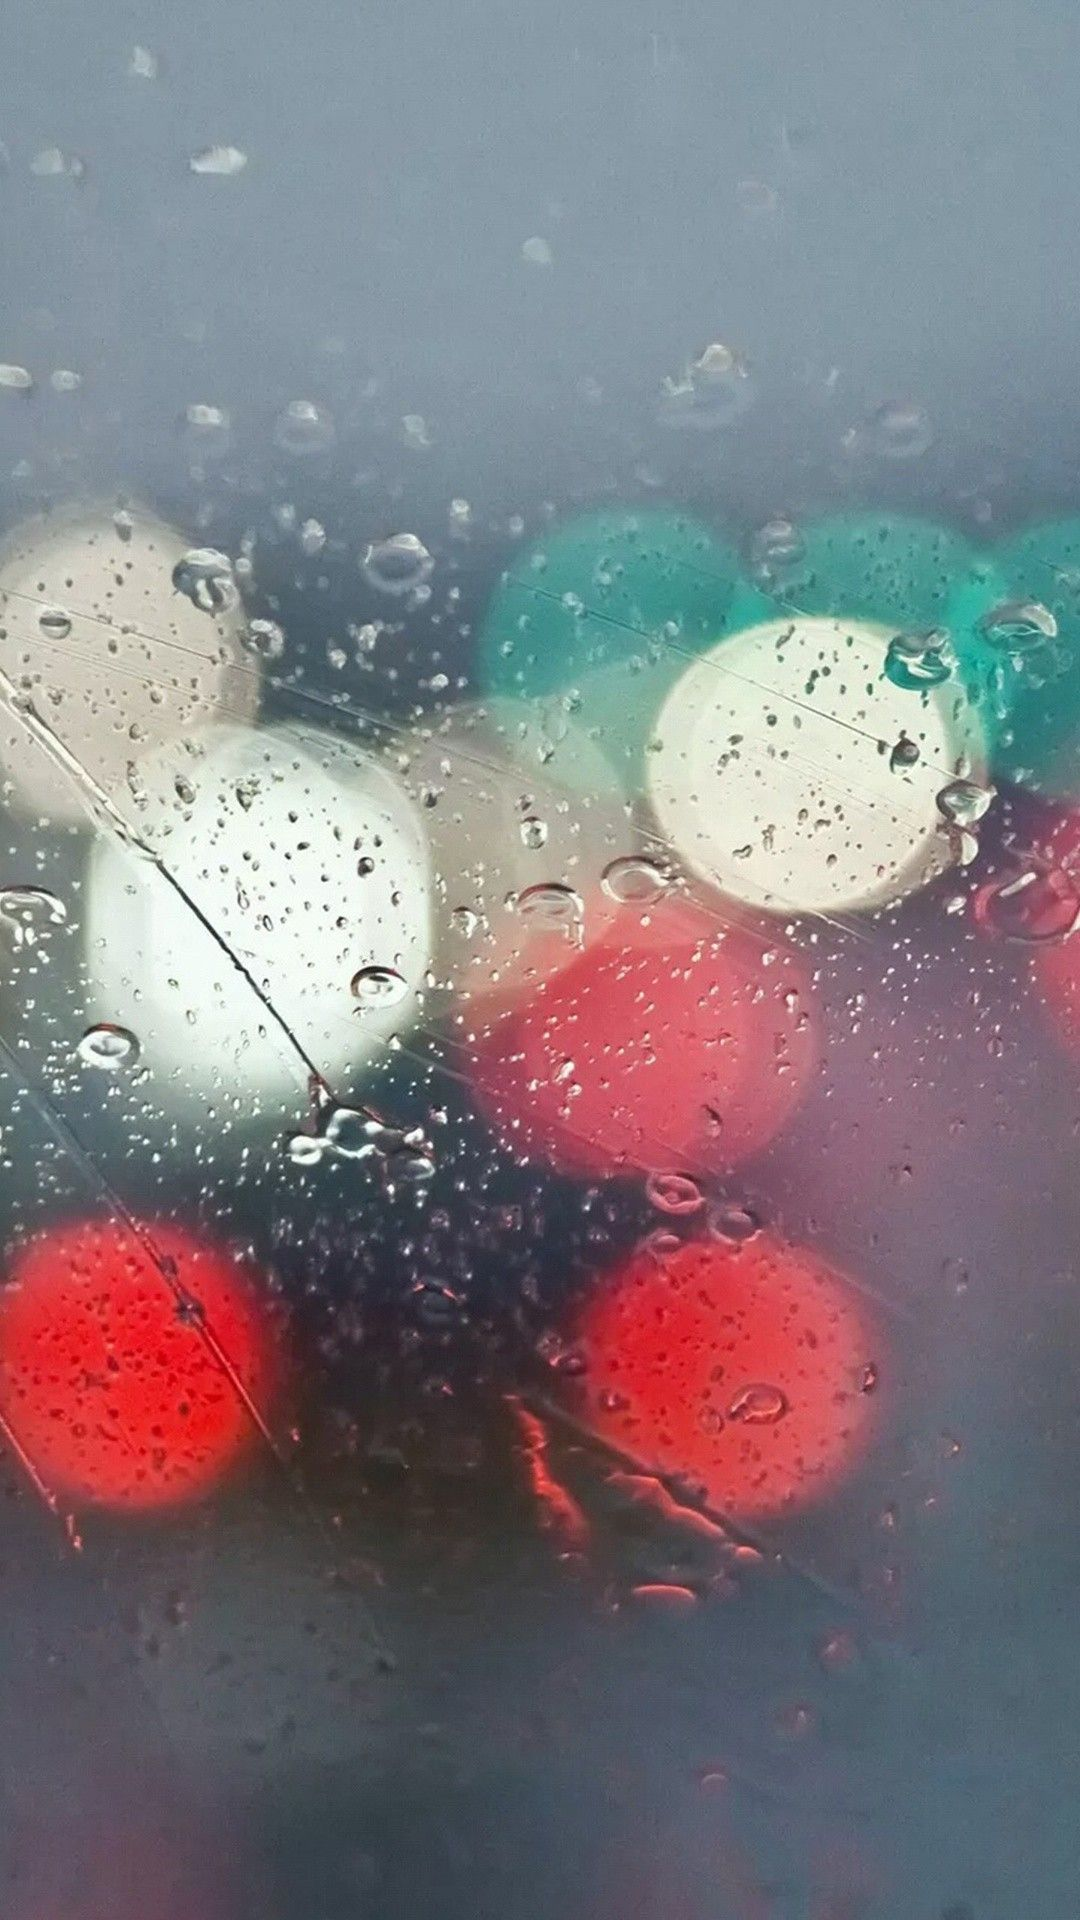 Rain Wallpaper IPhone 8